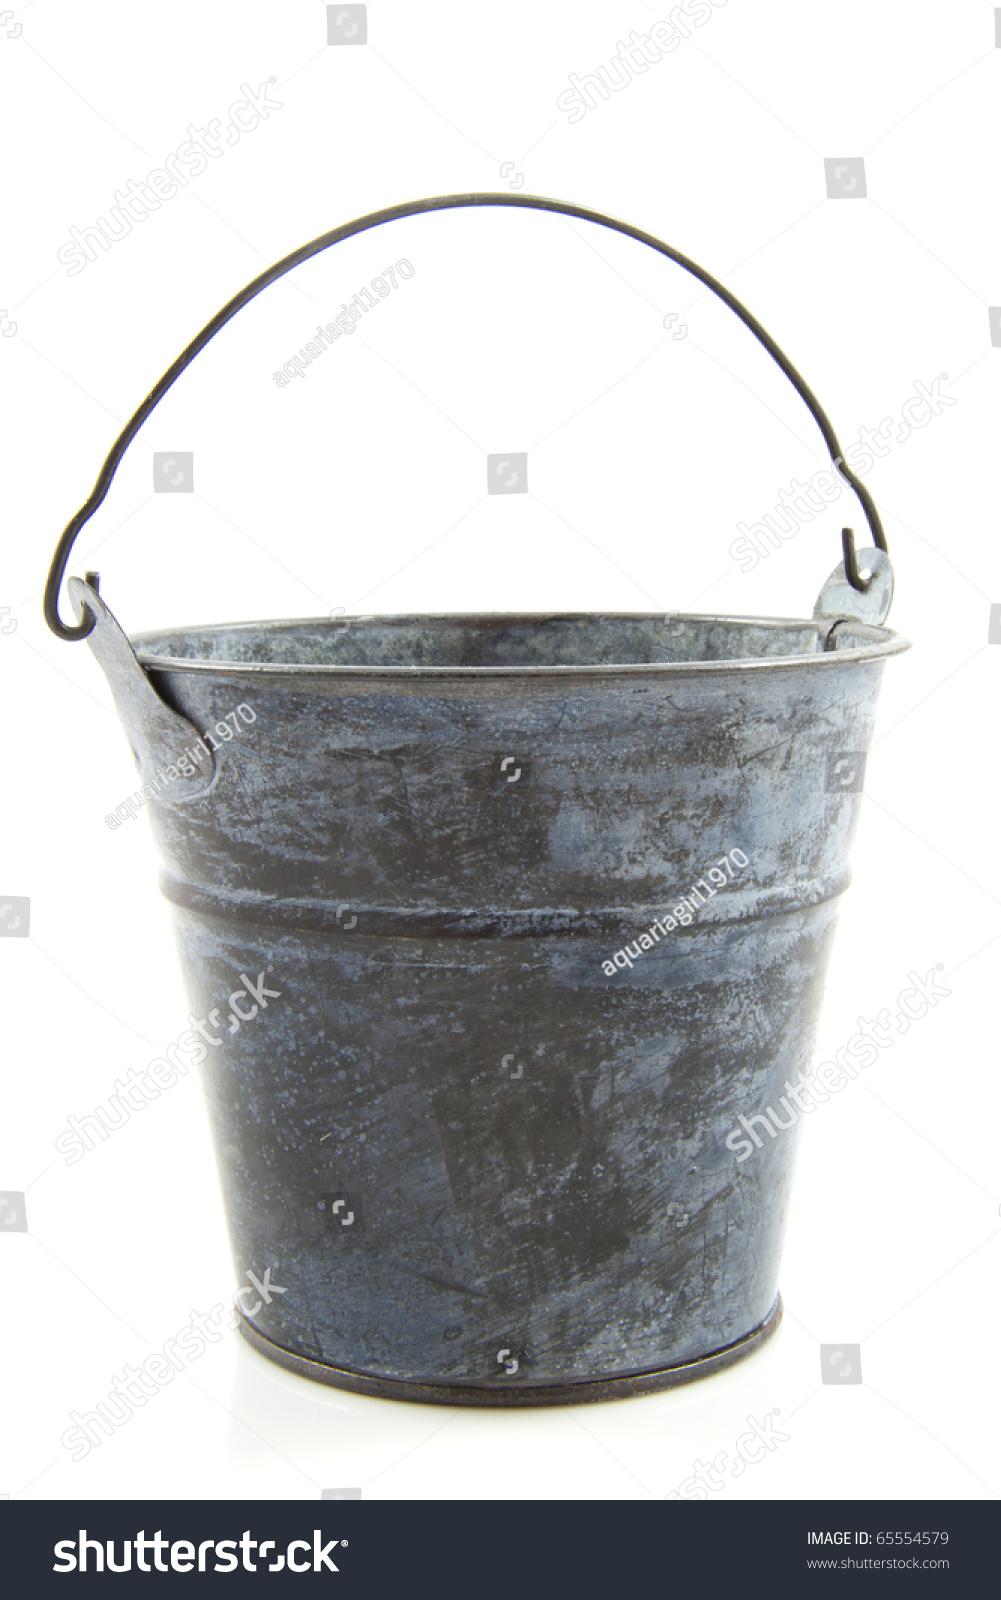 Old metal bucket isolated on a white background stock for Old metal buckets